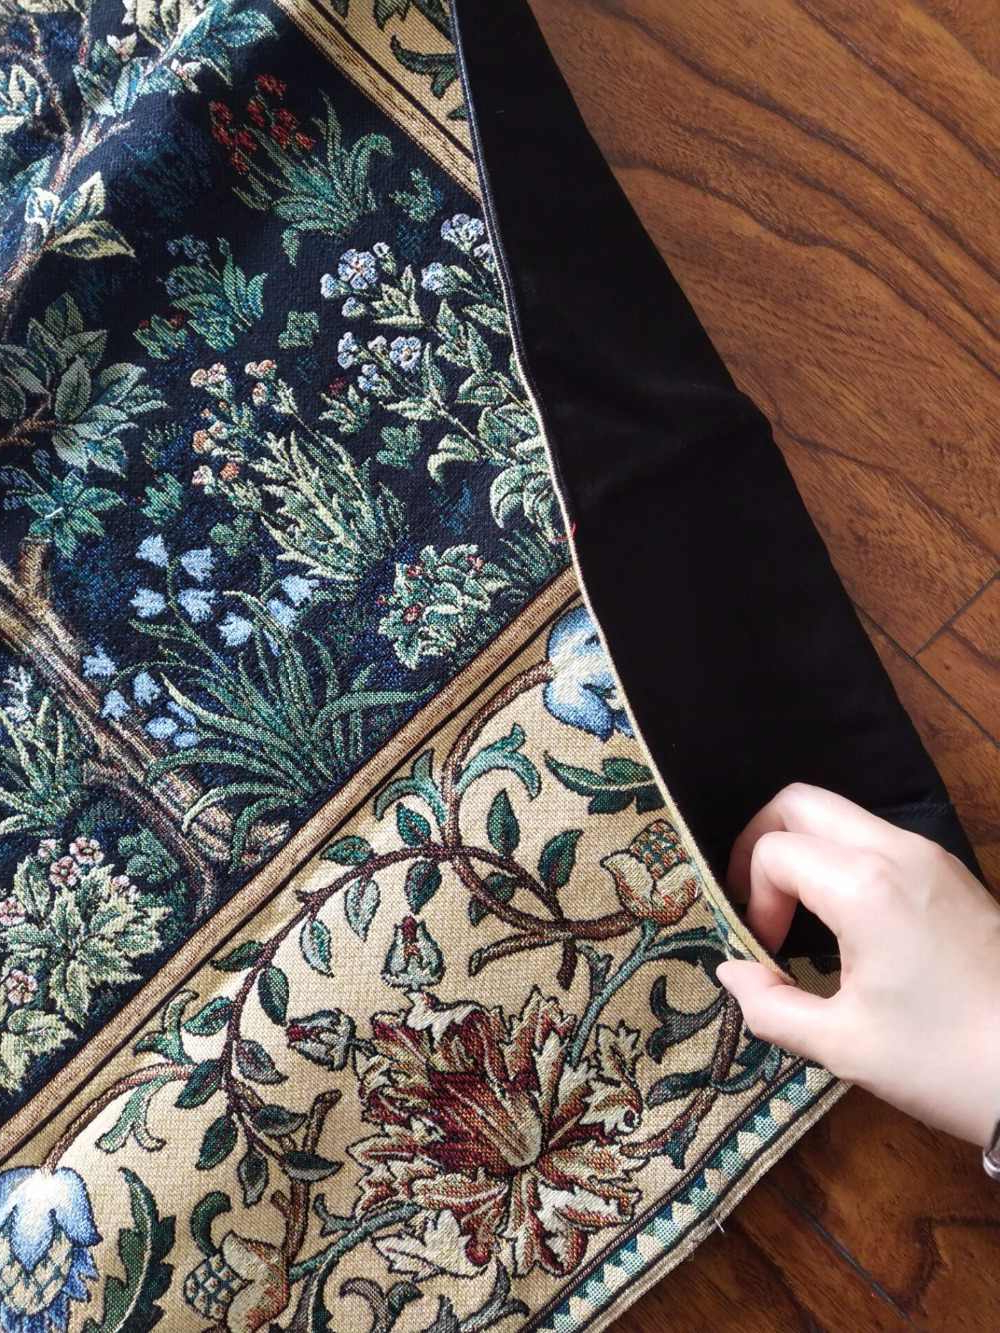 Blended Fabric Tree Of Life, William Morris Wall Hangings Intended For Favorite Belgium William Morris Works Tree Of Life Home Textile Jacquard Fabric Product Tapestry Wall Hangings Happy Fortune Tree Decorat (View 11 of 20)